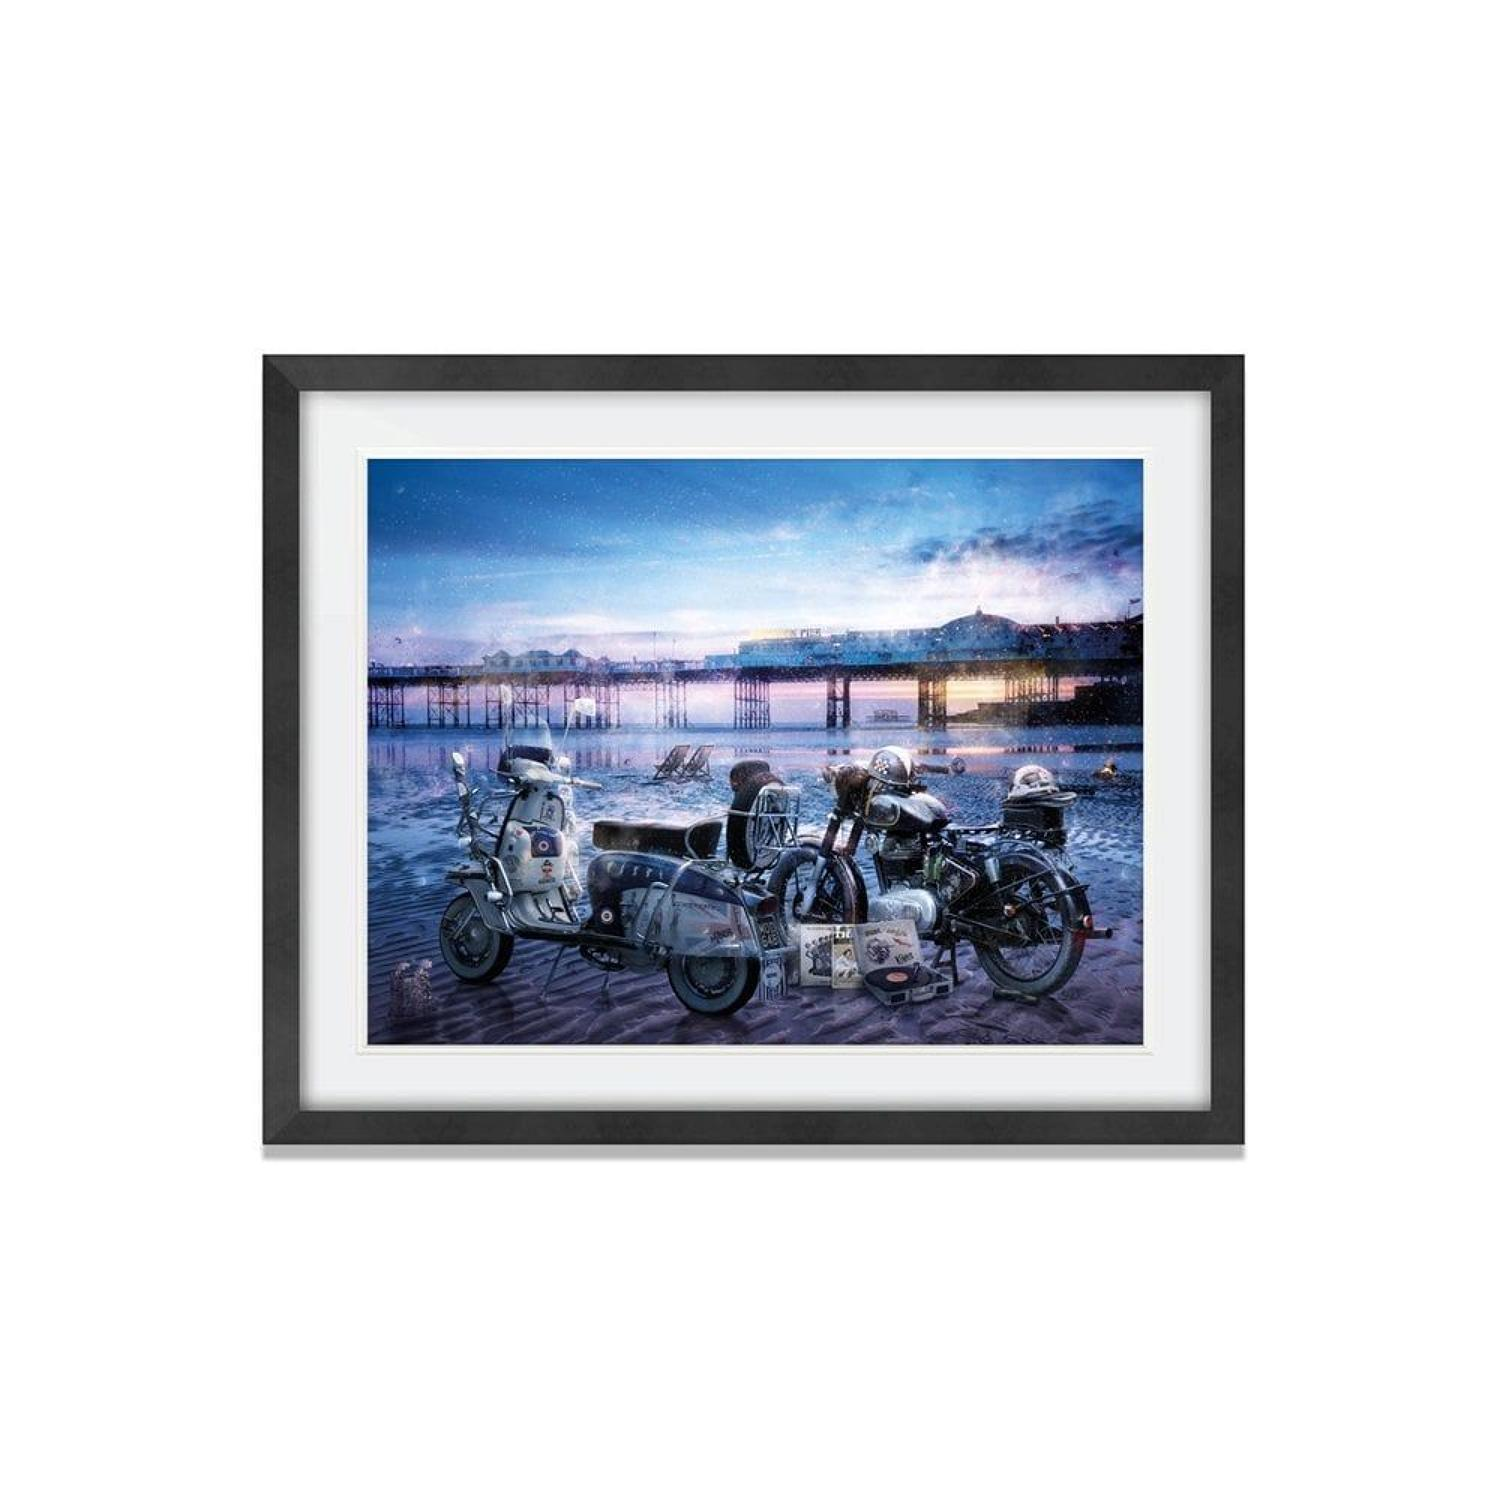 A Way Of Life - Framed Art Print by Mark Davies